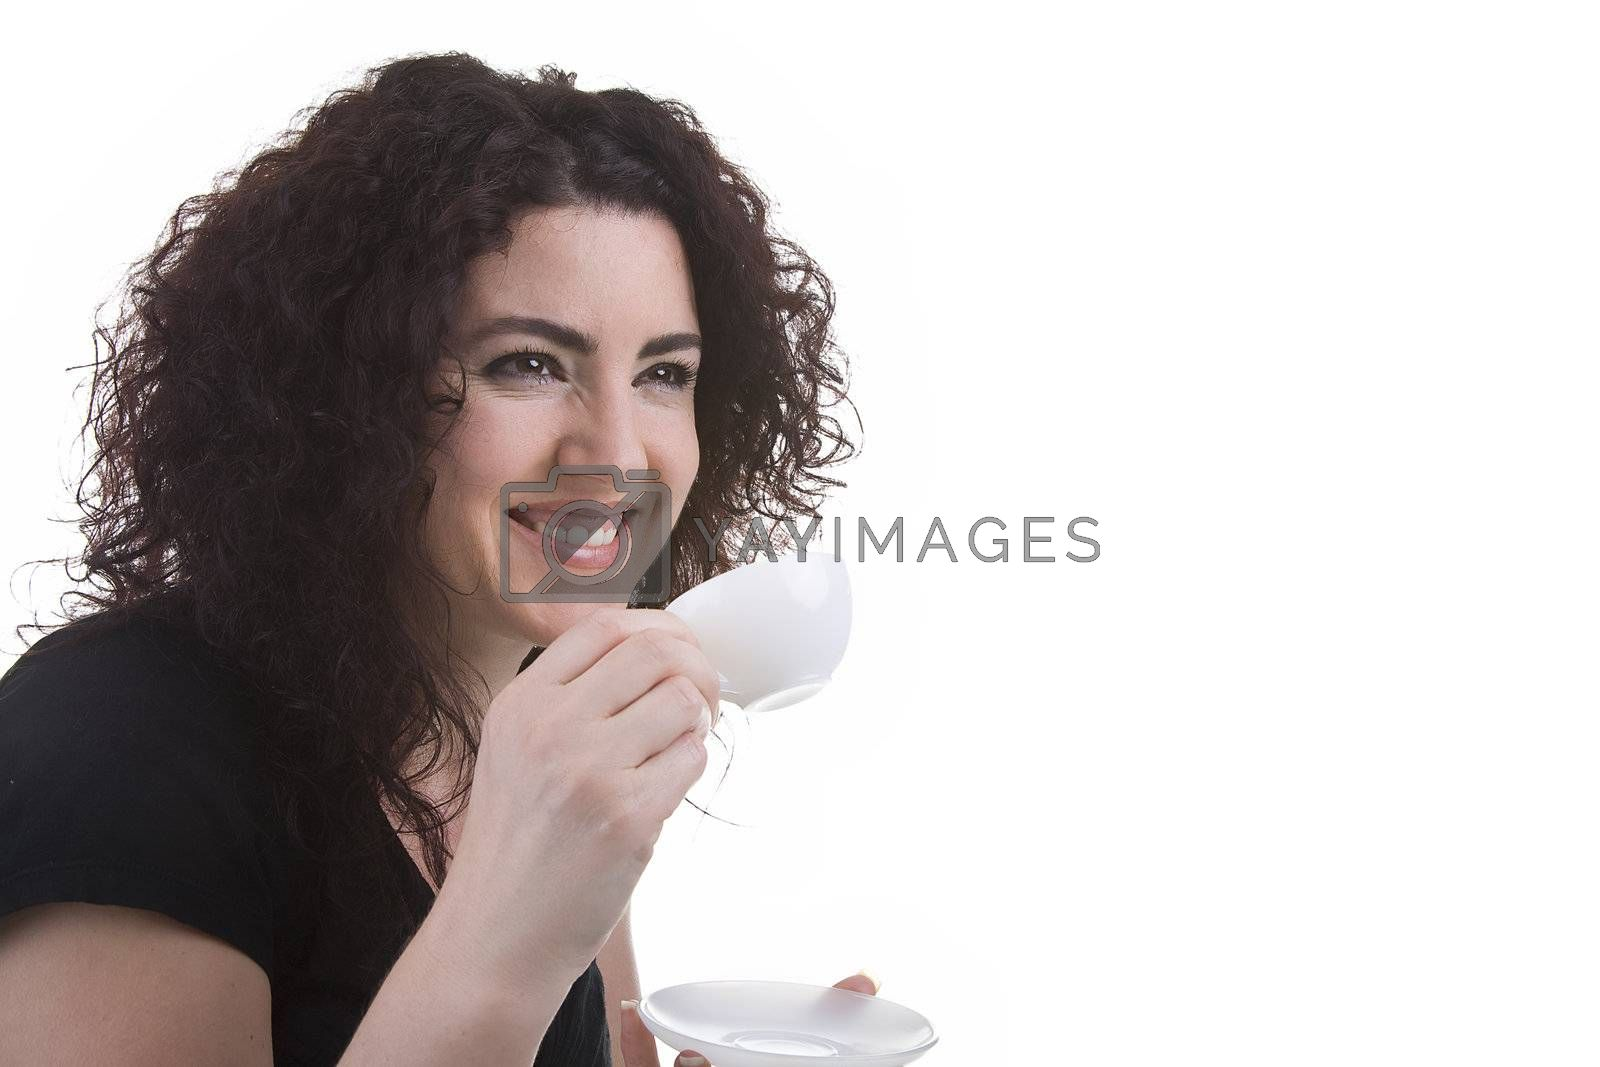 Beautiful brunette woman smiling, having an espresso. Studio shot. Isolated on white background.